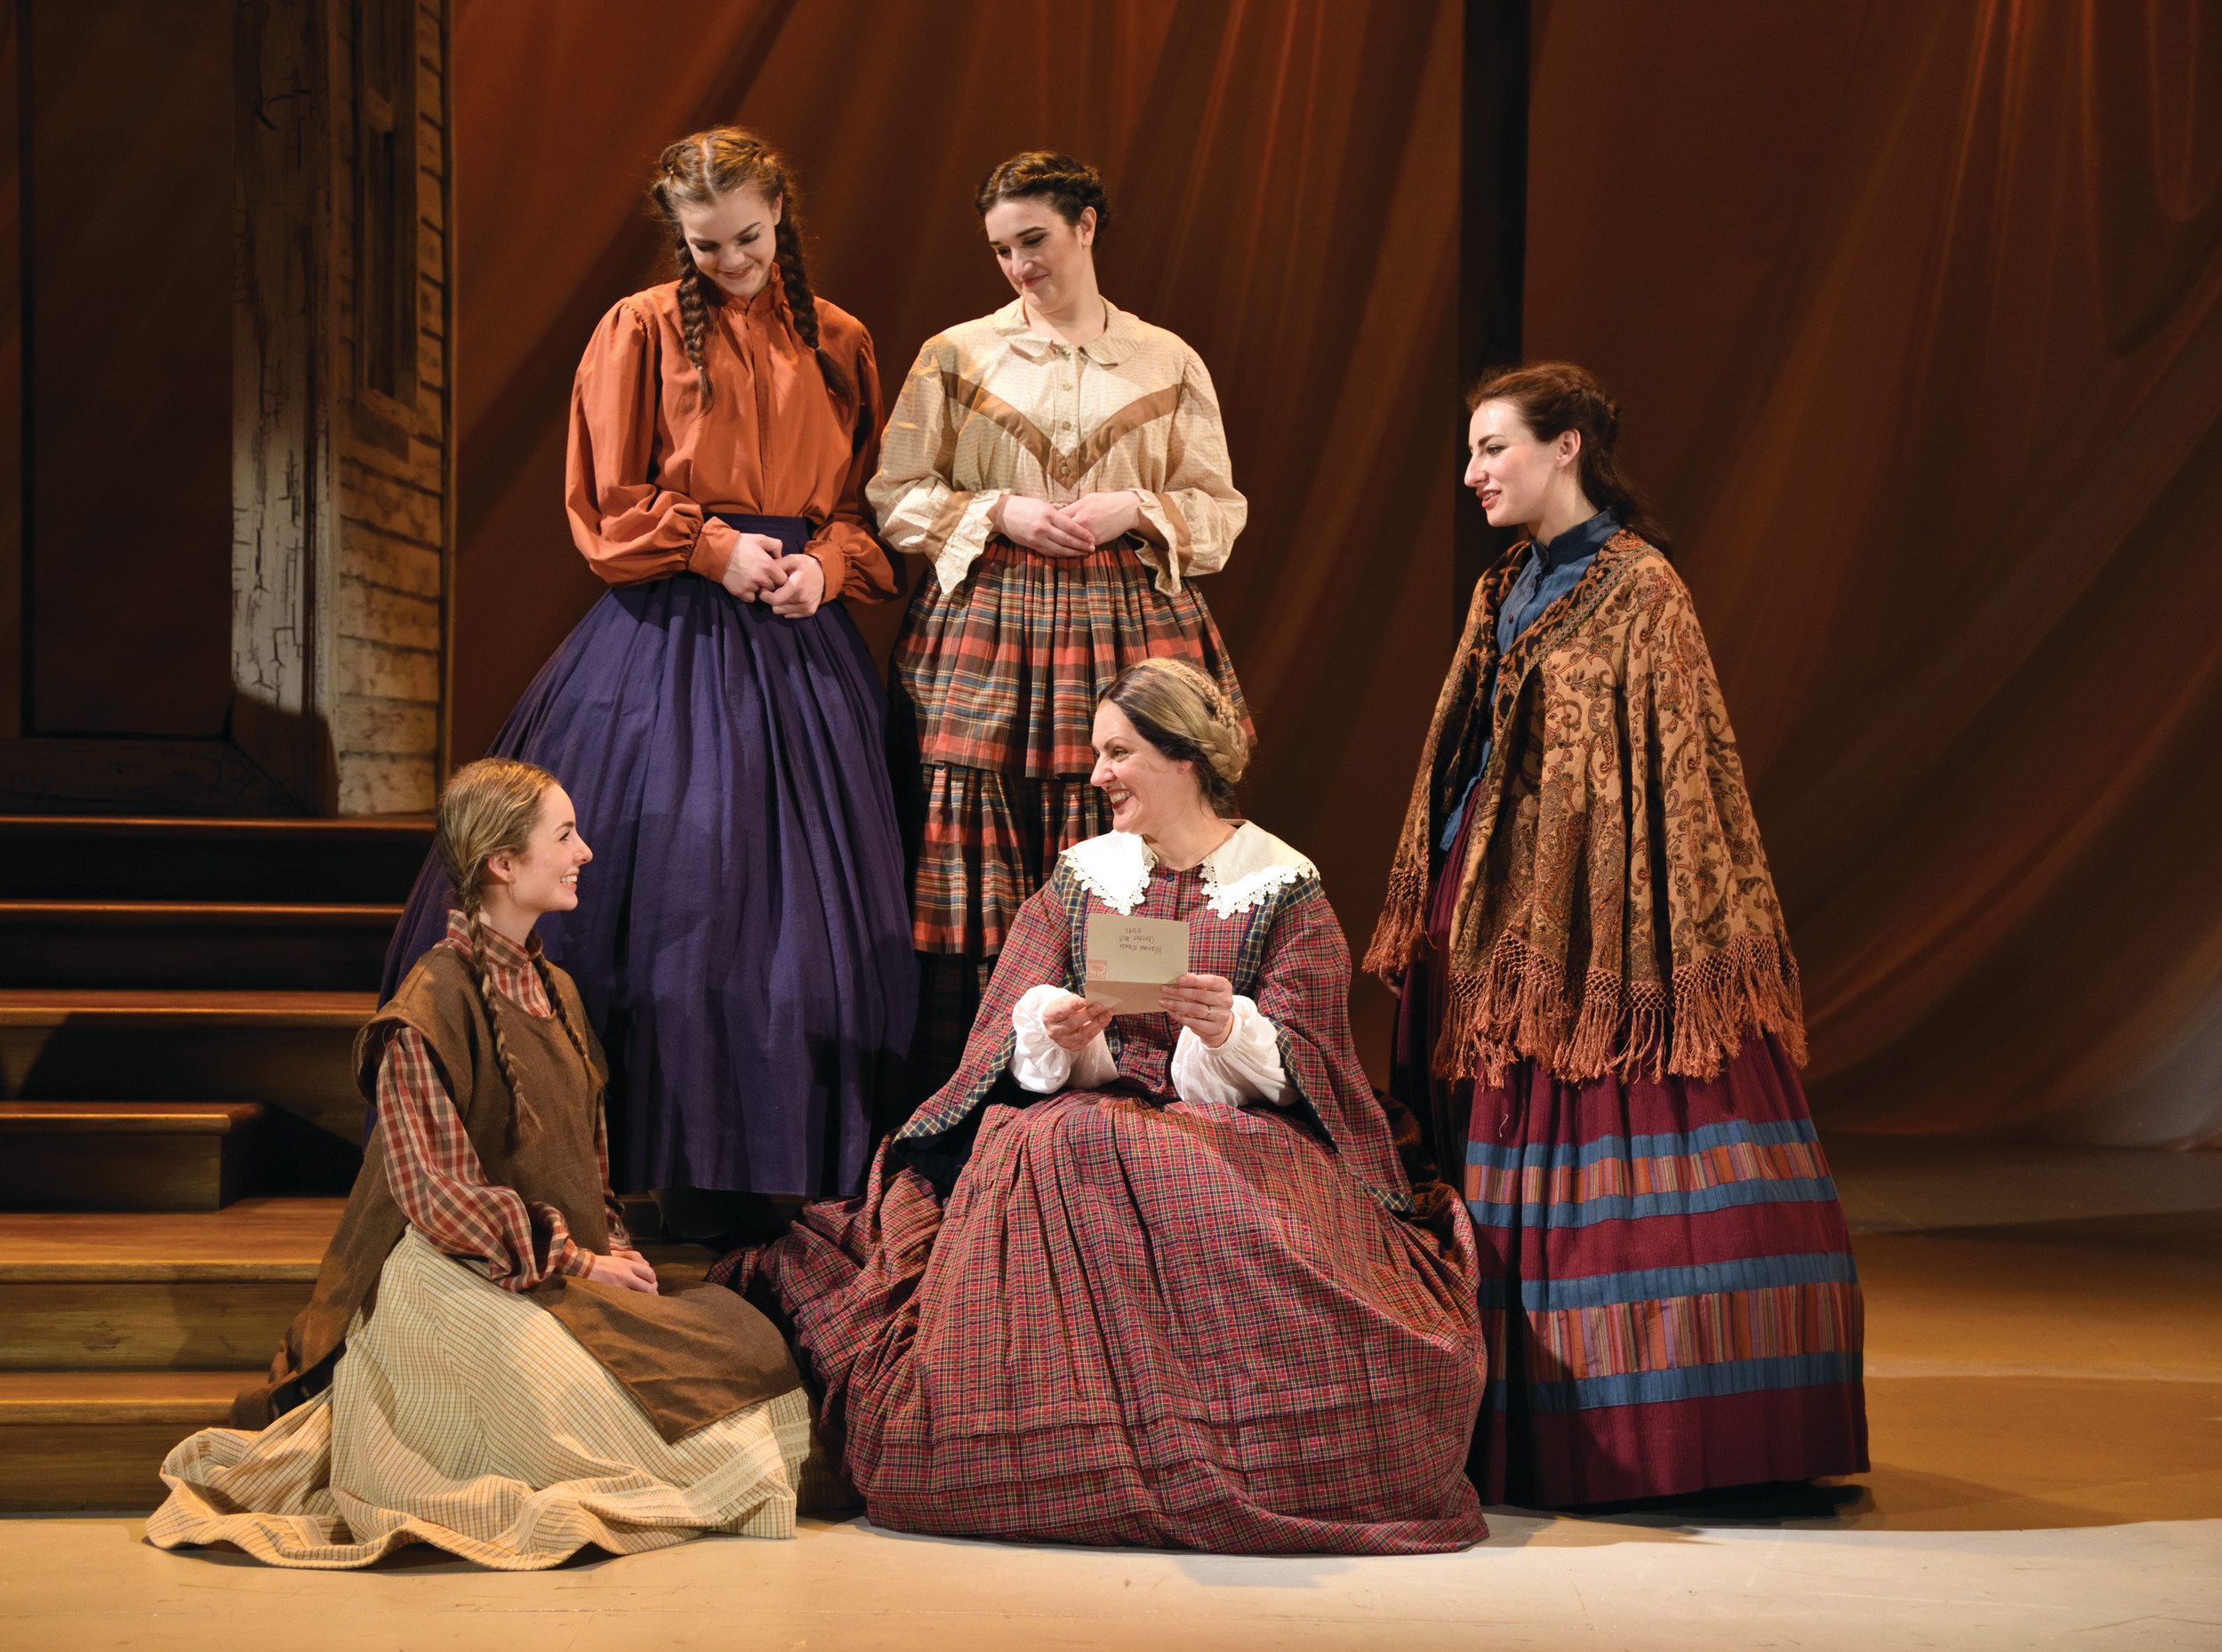 "(sitting from left) Abigail McMahon, Amiee Turner, (standing from left) Bryn Martin, Alison Novelli and Tess Jonas star as Amy, Marmee, Beth, Meg and Jo in the heartwarming, family-friendly musical, ""Little Women: The Musical,"" which is on stage at Ocean State Theatre in Warwick through March 19. For tickets call 921-6800 or visit 